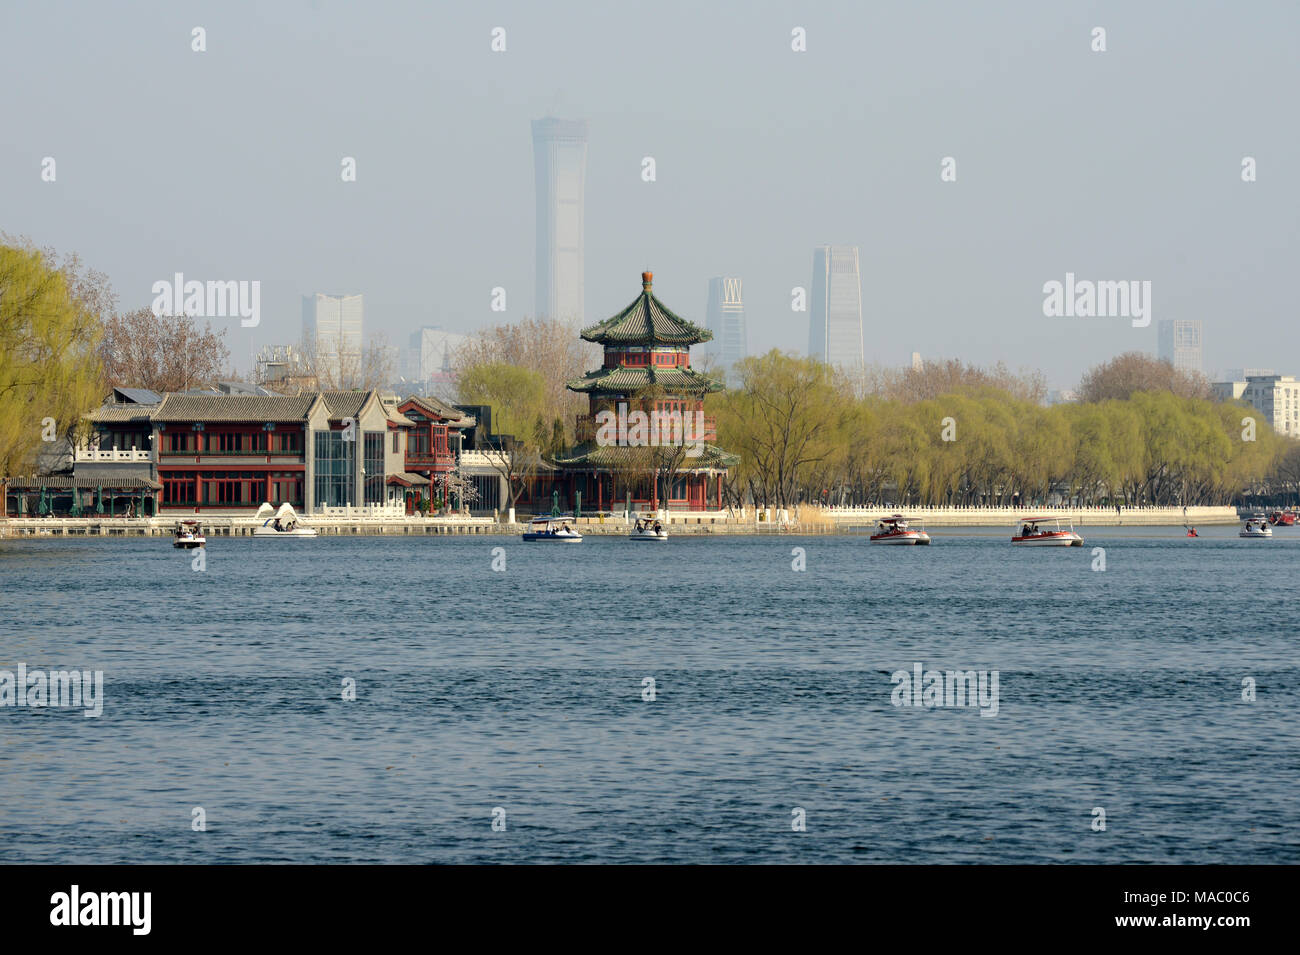 View of a pavilion in Shichahai scenic area in Houhai, with the outline of buildings of the CBD visible in the distance behind. Beijing, China Stock Photo